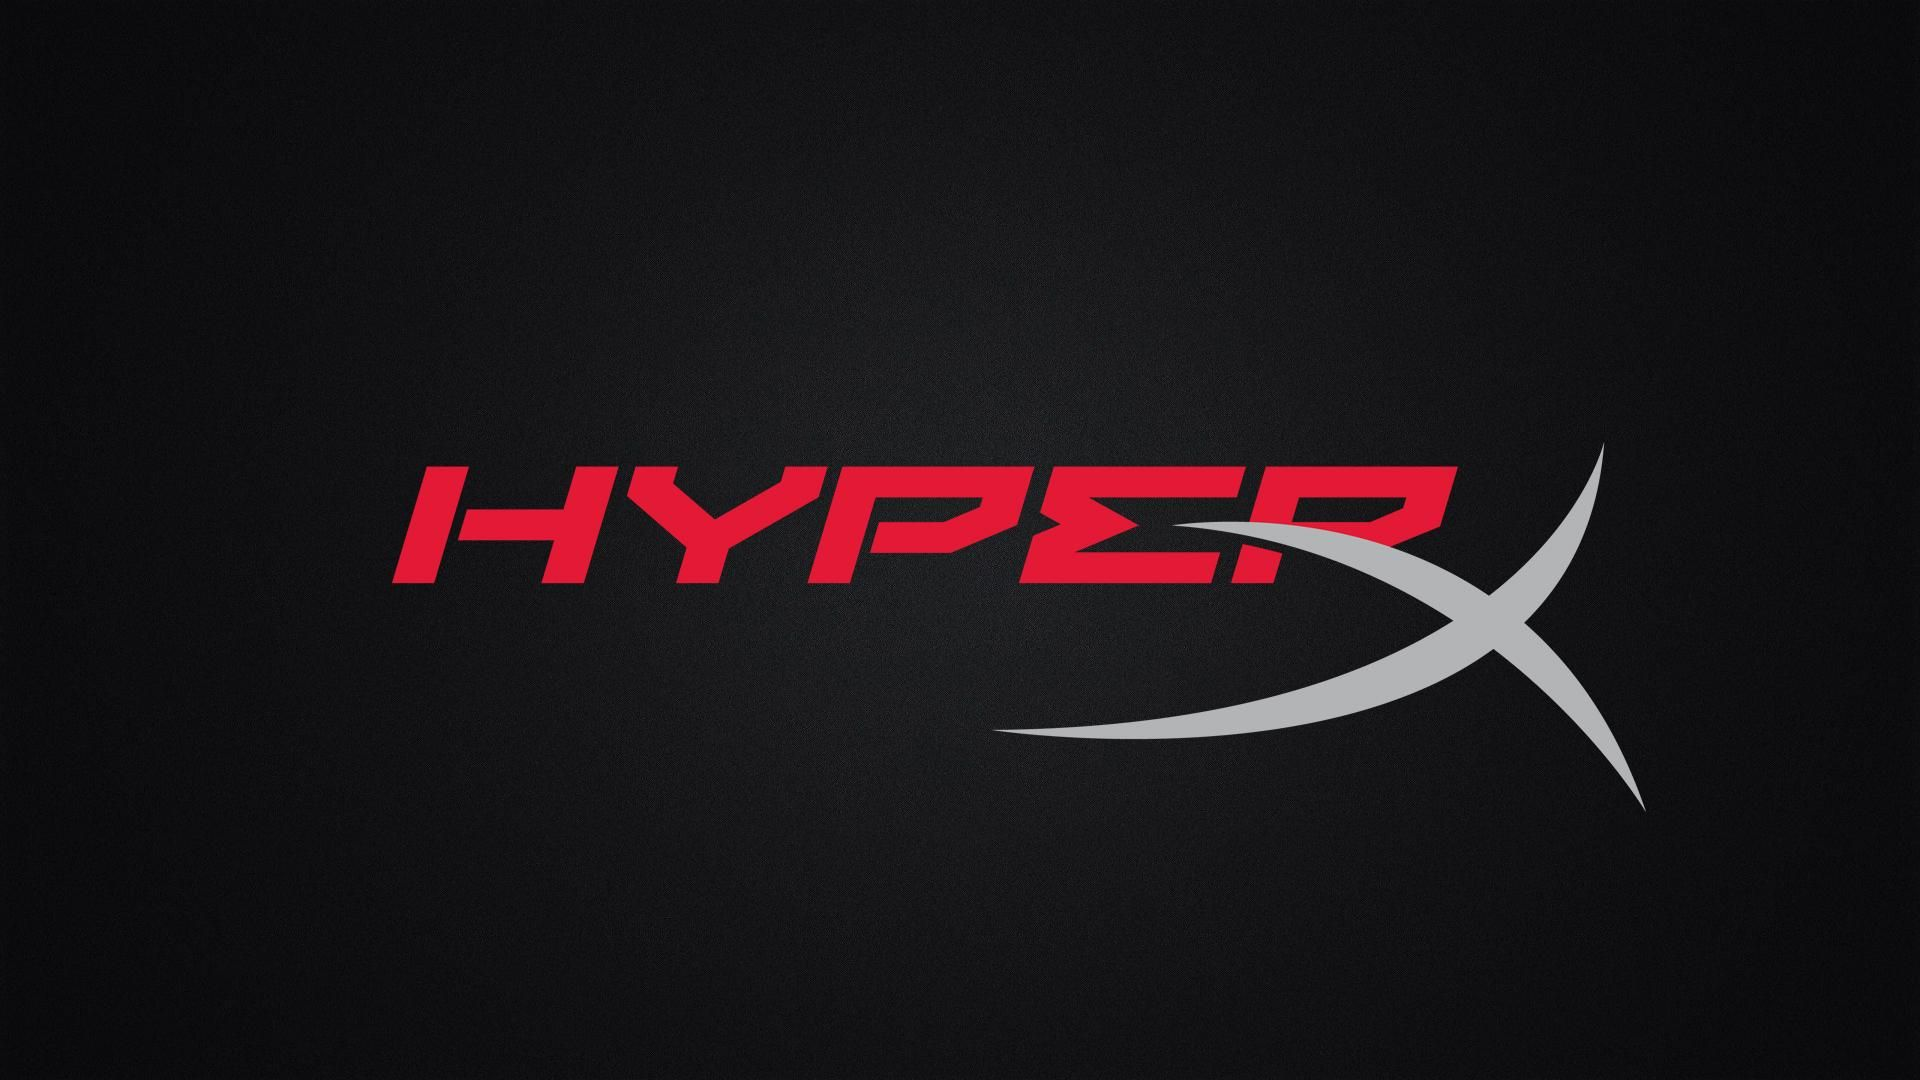 Simple HyperX wallpaper